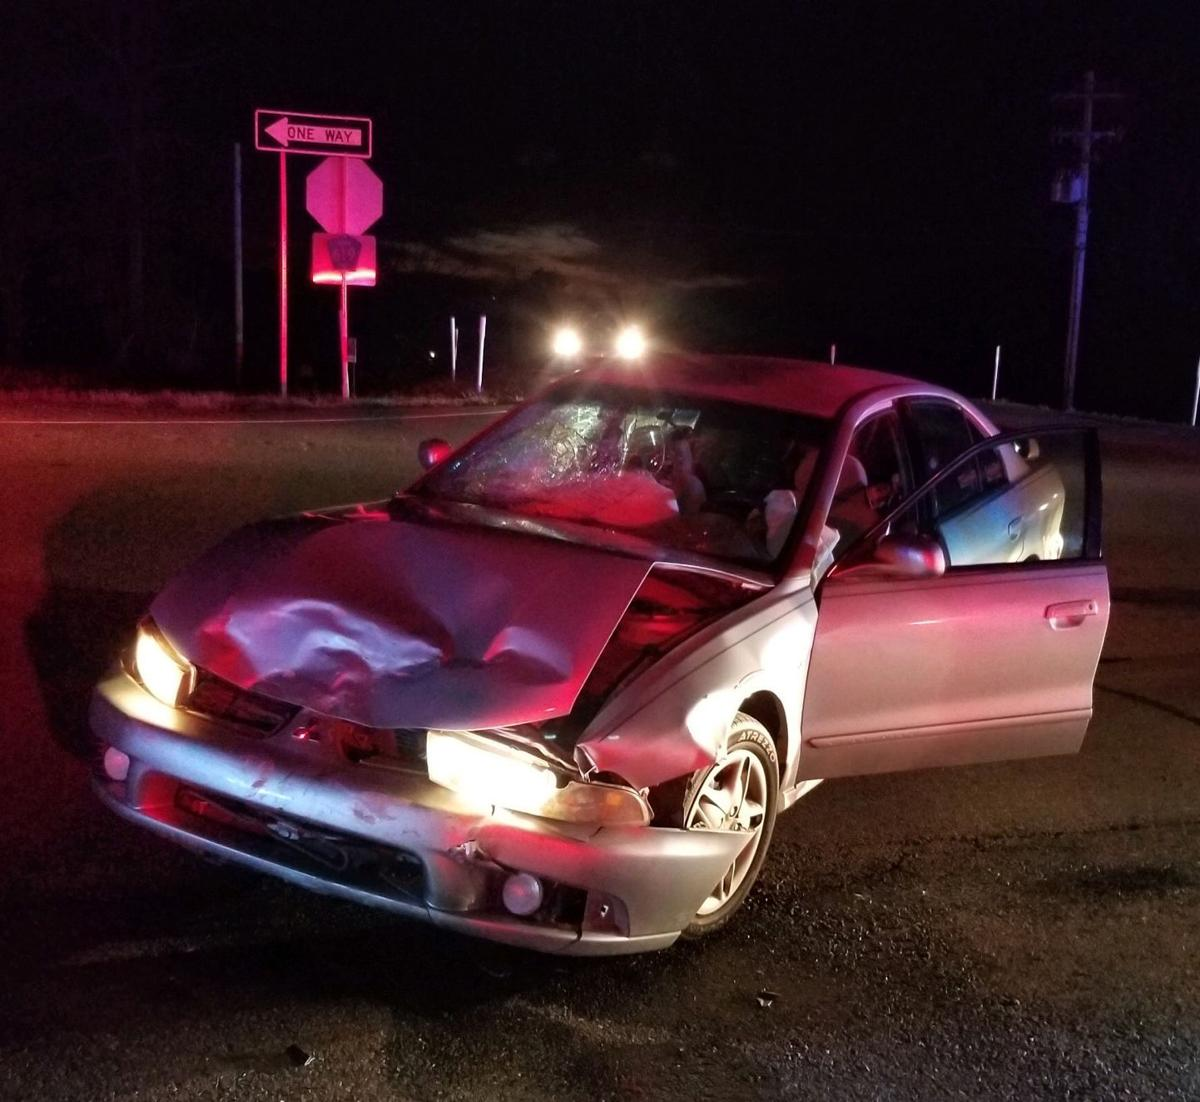 Two injured in Highway 30 wreck